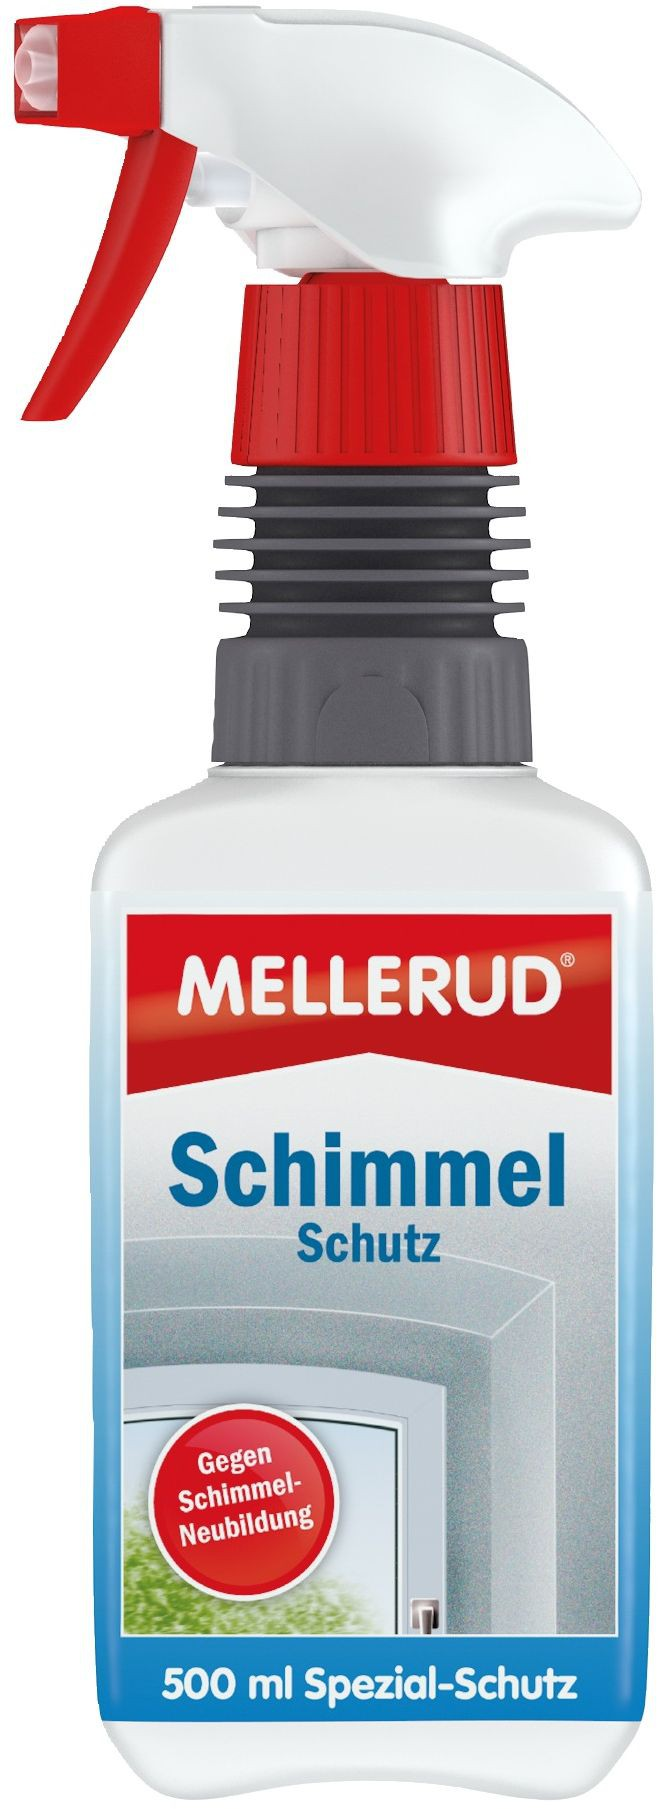 mellerud schimmel schutz 500 ml flasche online kaufen. Black Bedroom Furniture Sets. Home Design Ideas